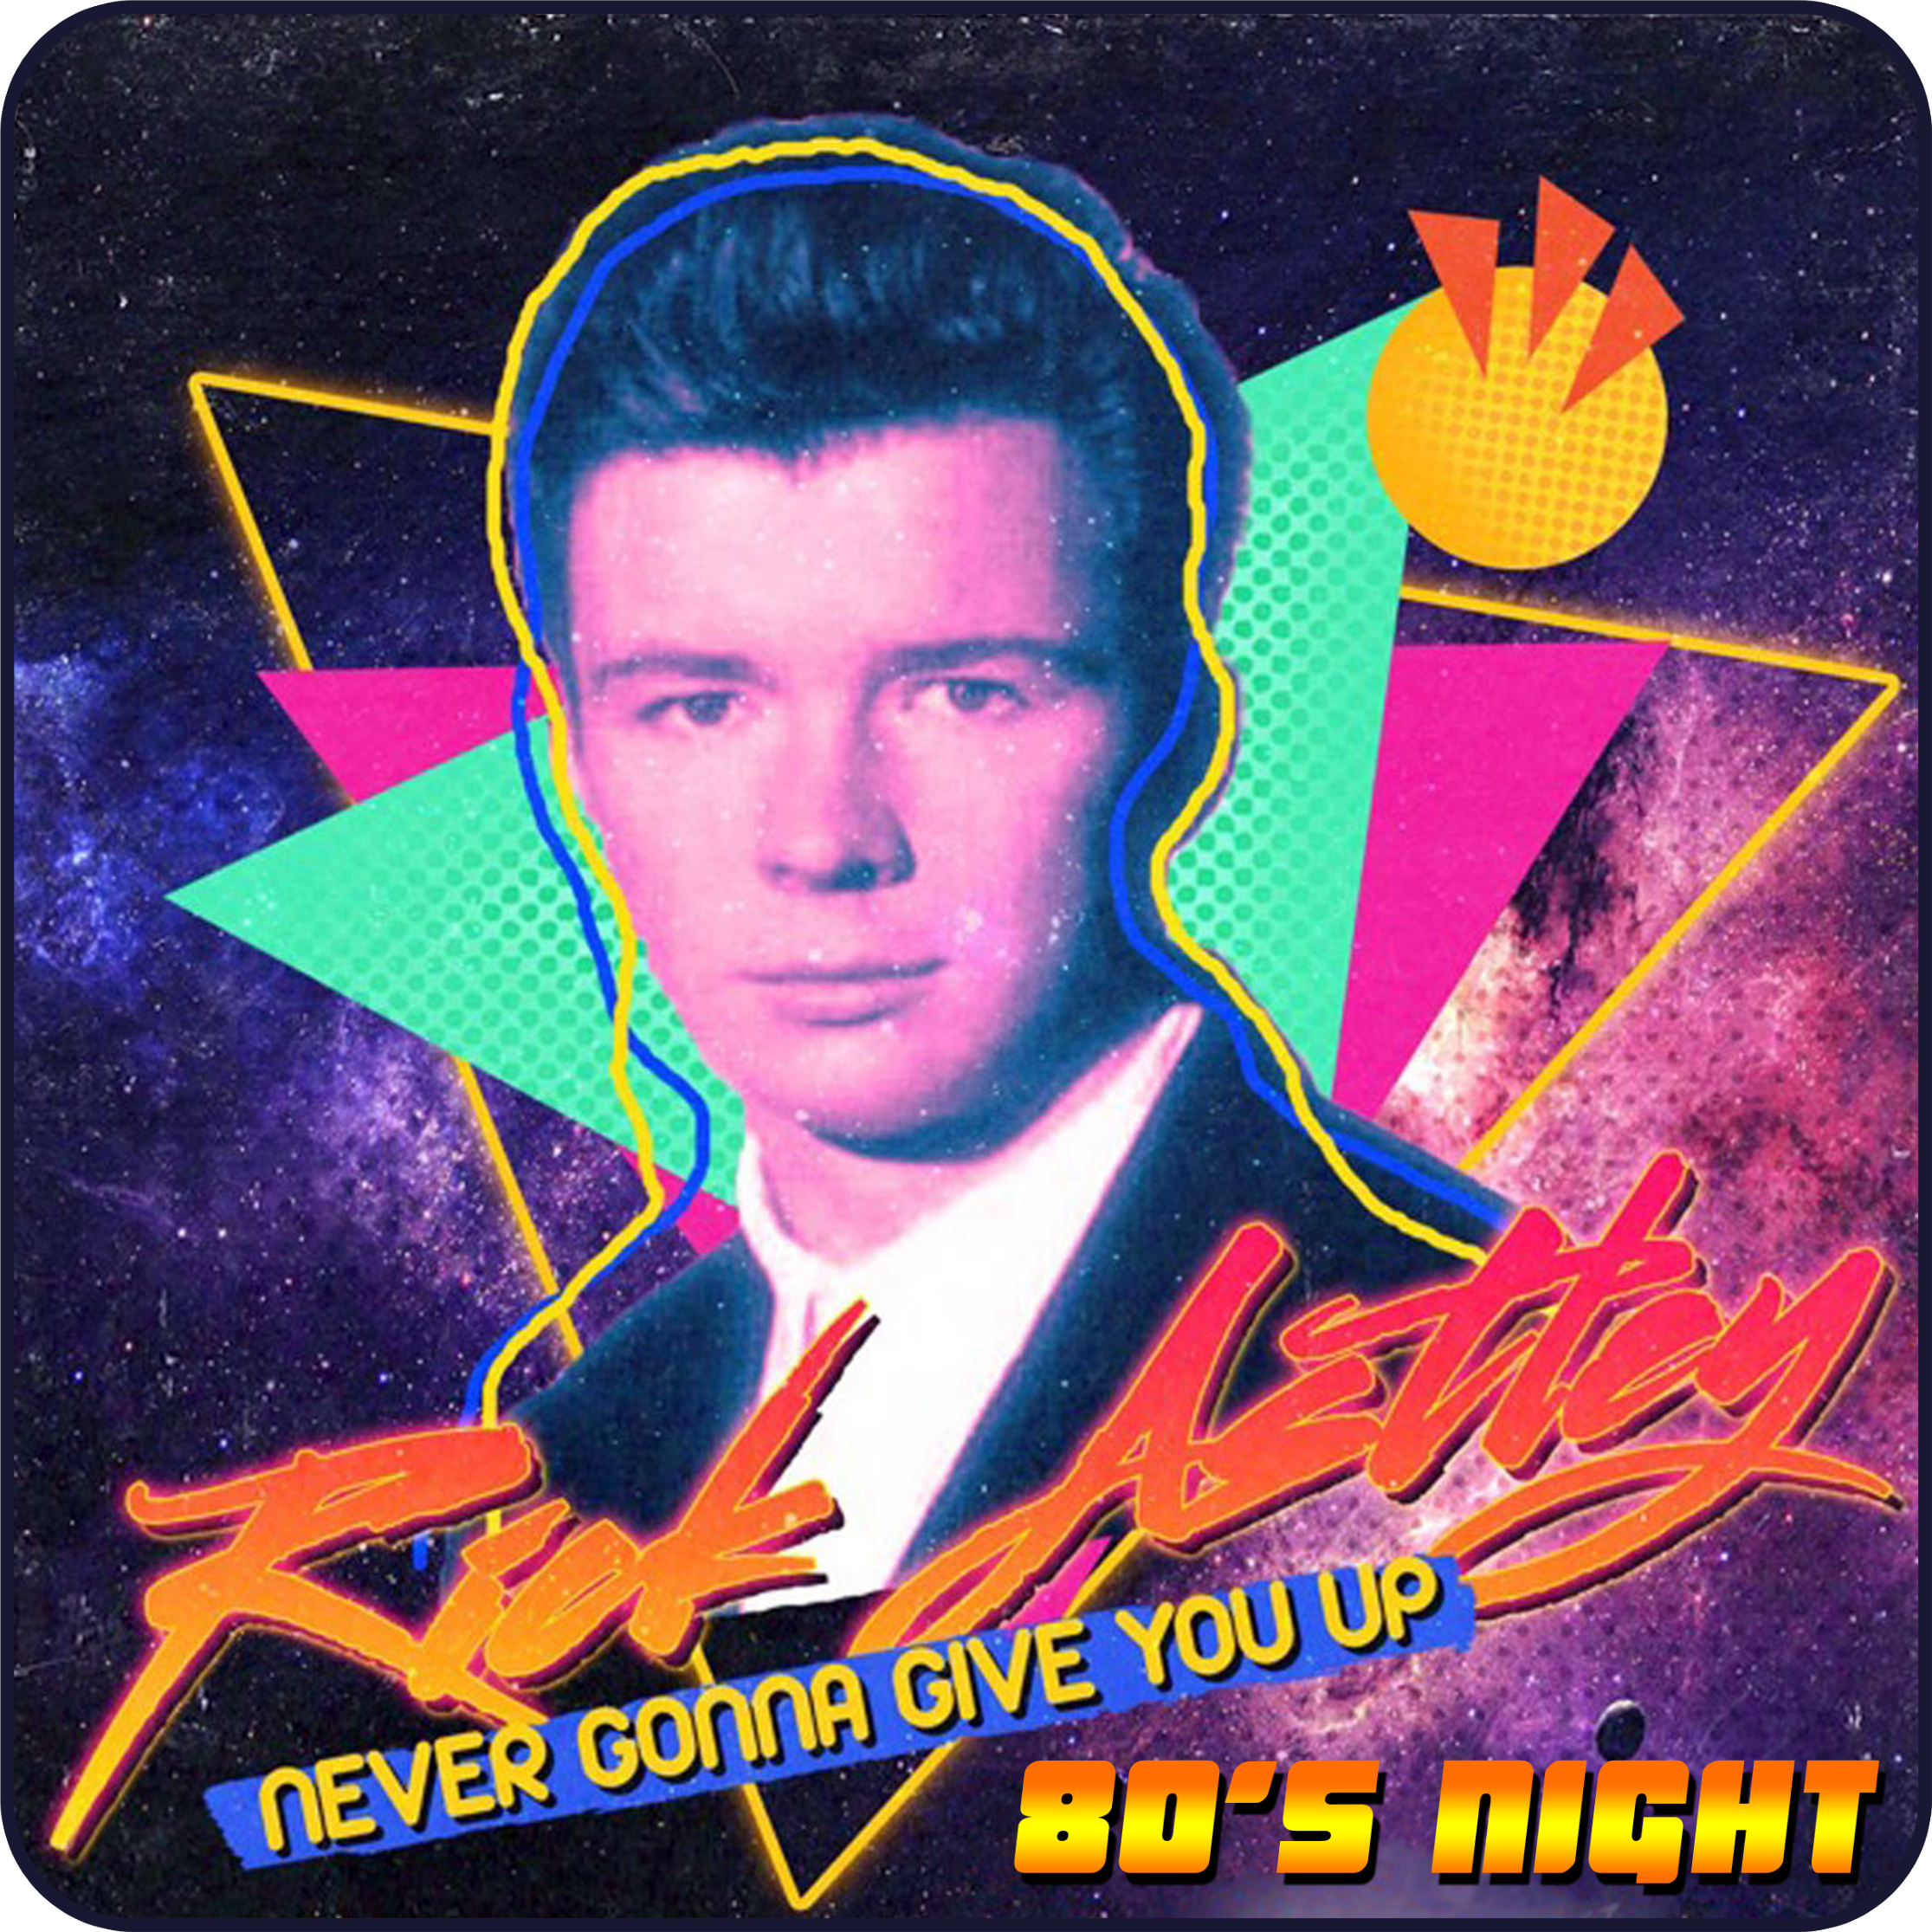 Never Gonna Give Up 80s Night